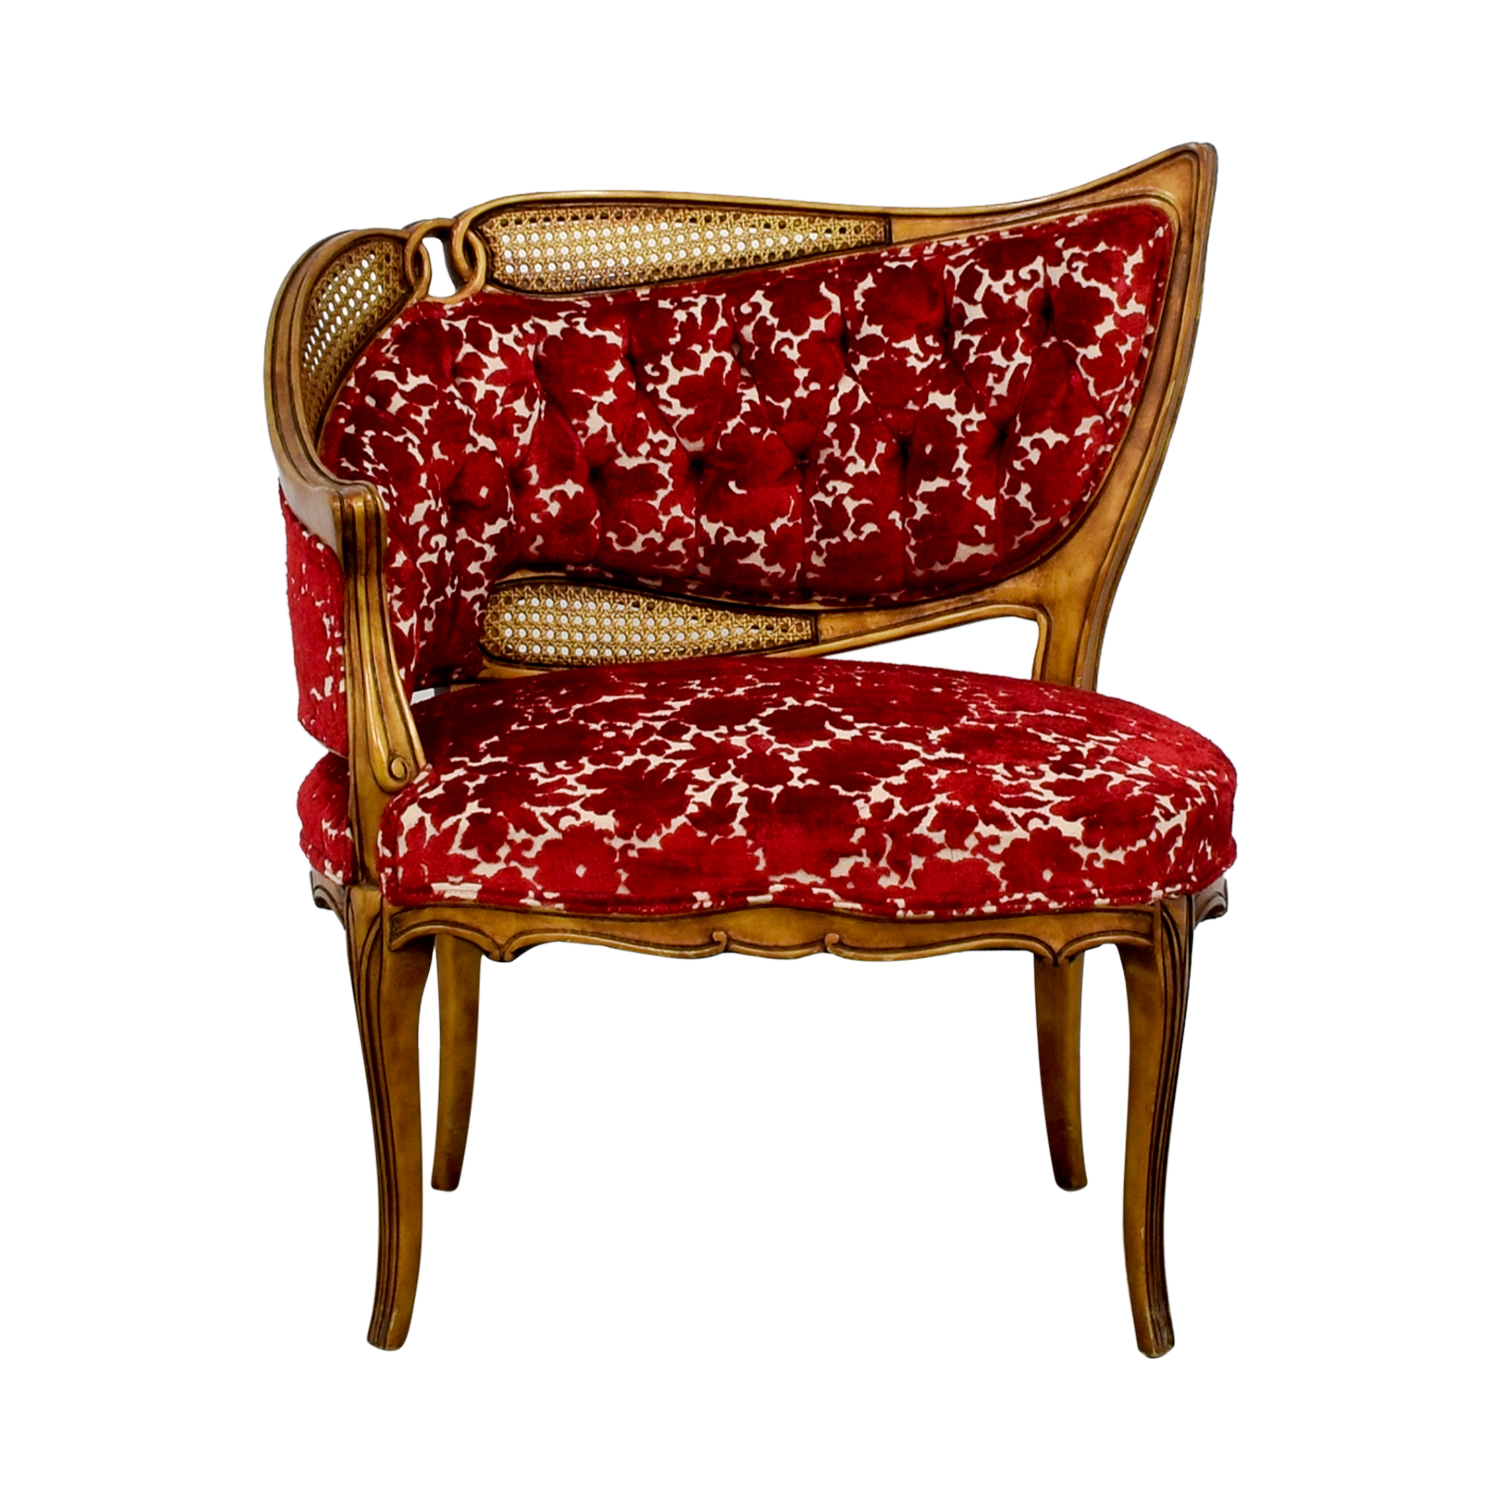 buy Red and Gold Upholstered Wave Back Chair